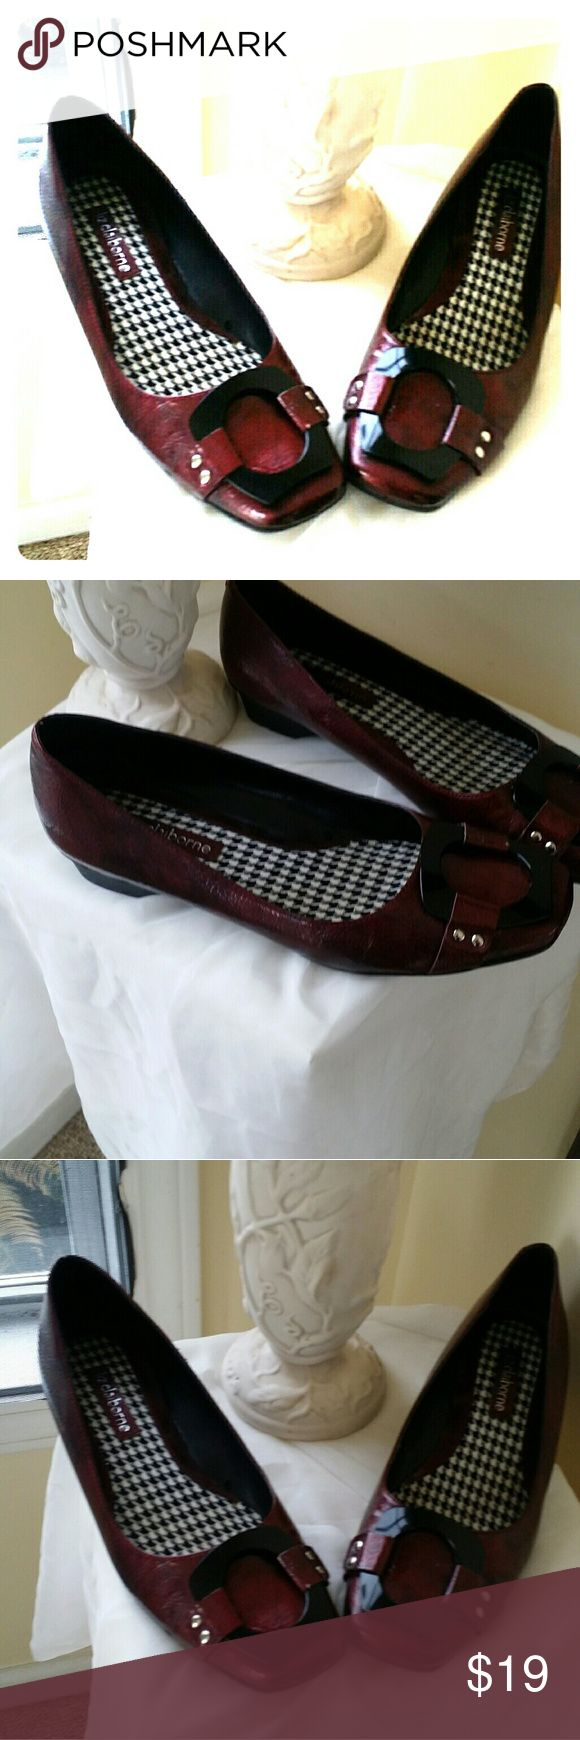 Liz Claiborne Flats. Beautiful shoes Almost burgundy with a little black. Look like new cond . comfy. Rubber soles. Liz Claiborne Shoes